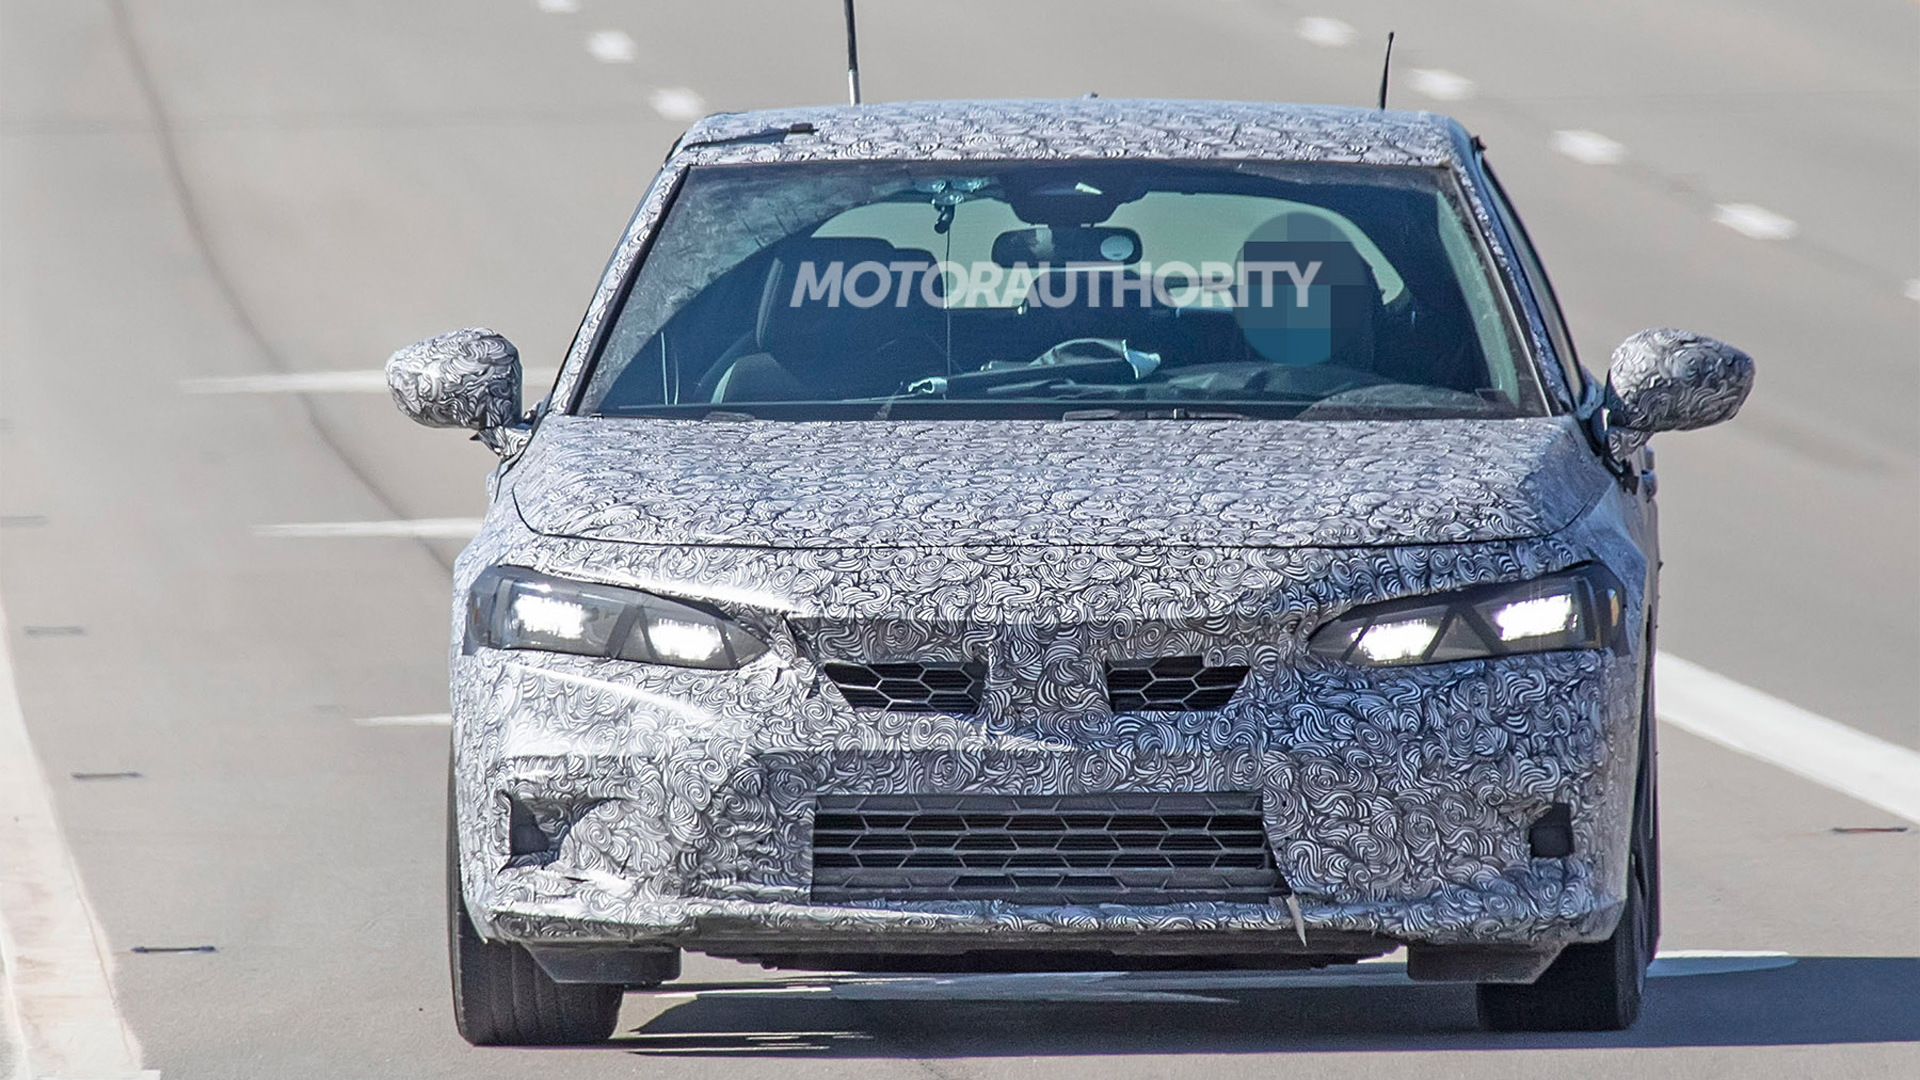 2022 Honda Civic Hatchback spy shots - Photo credit: S. Baldauf/SB-Medien